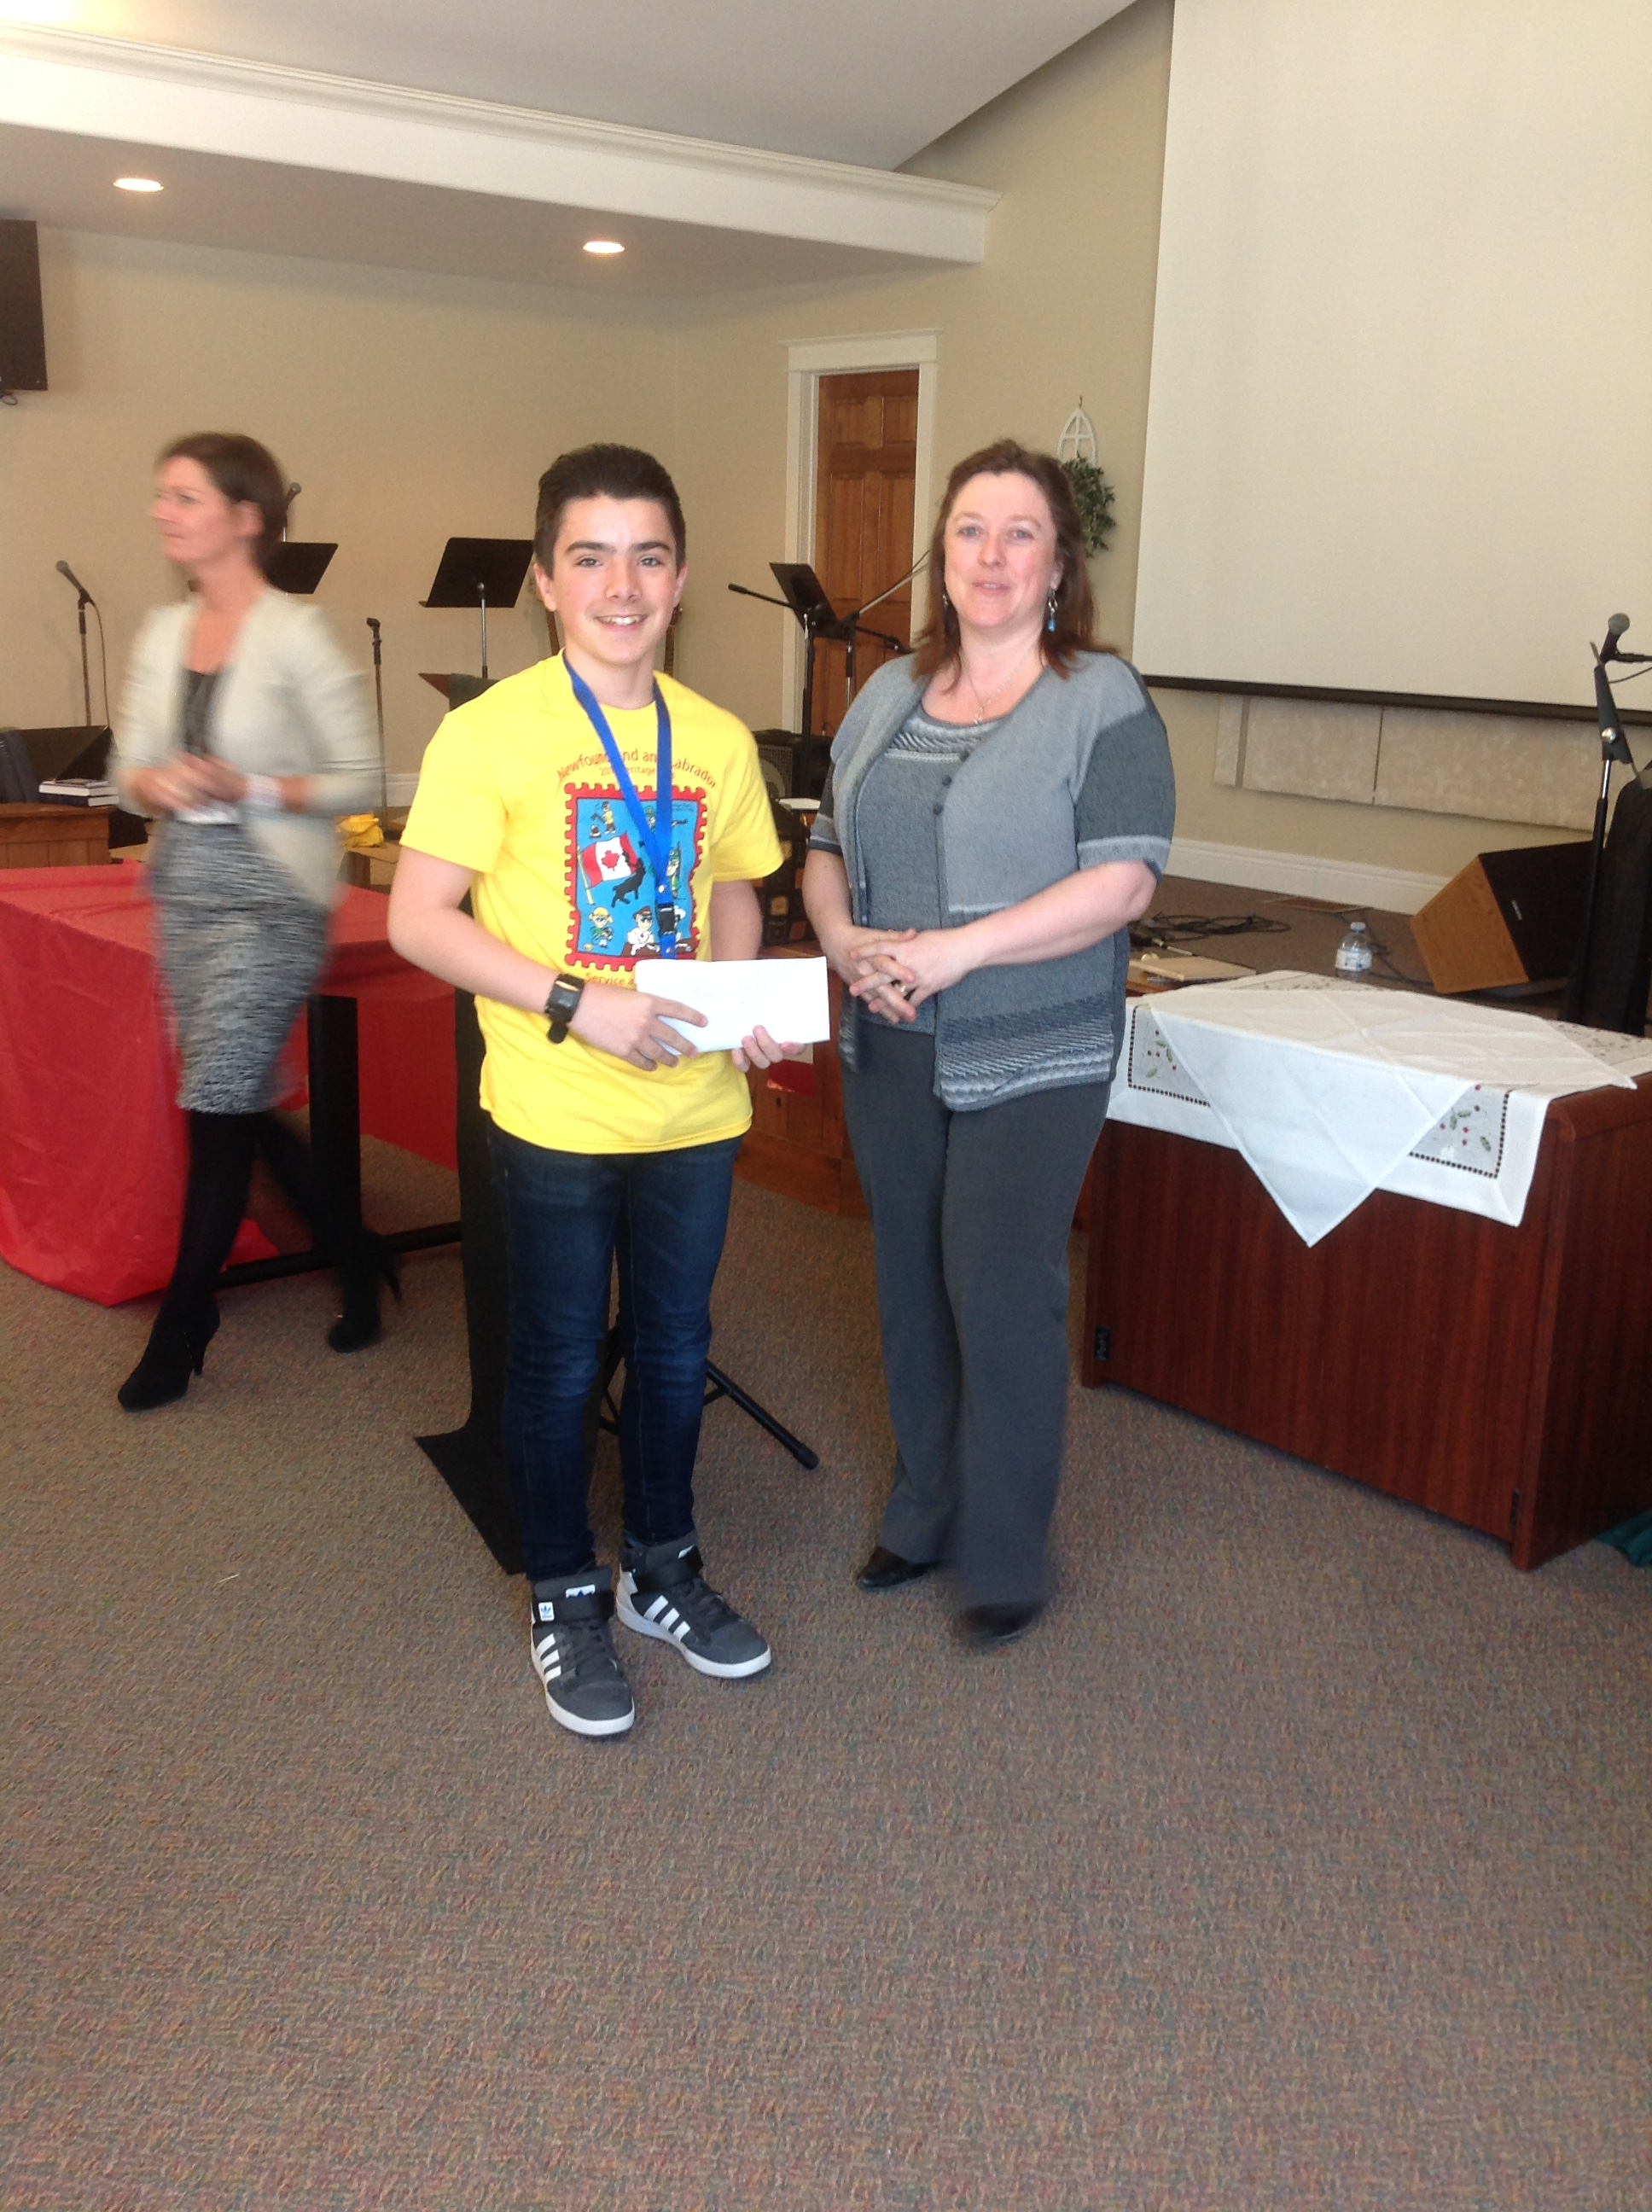 1st Place Winner - Evan Purchase